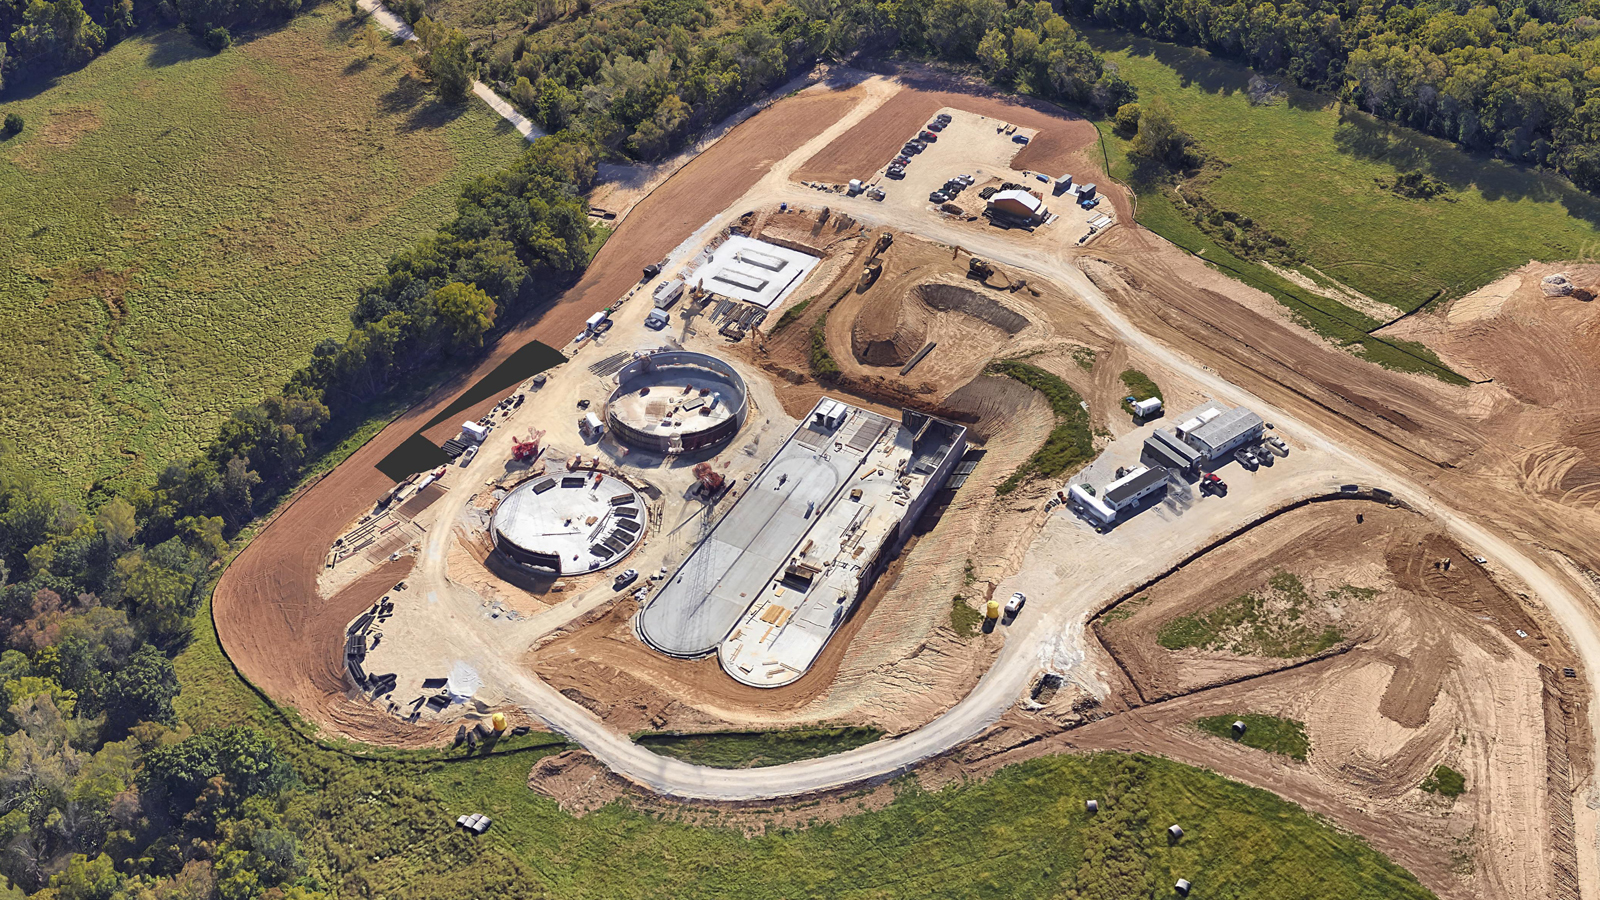 Liberty Wastewater Treatment Facilities Construction Aerial